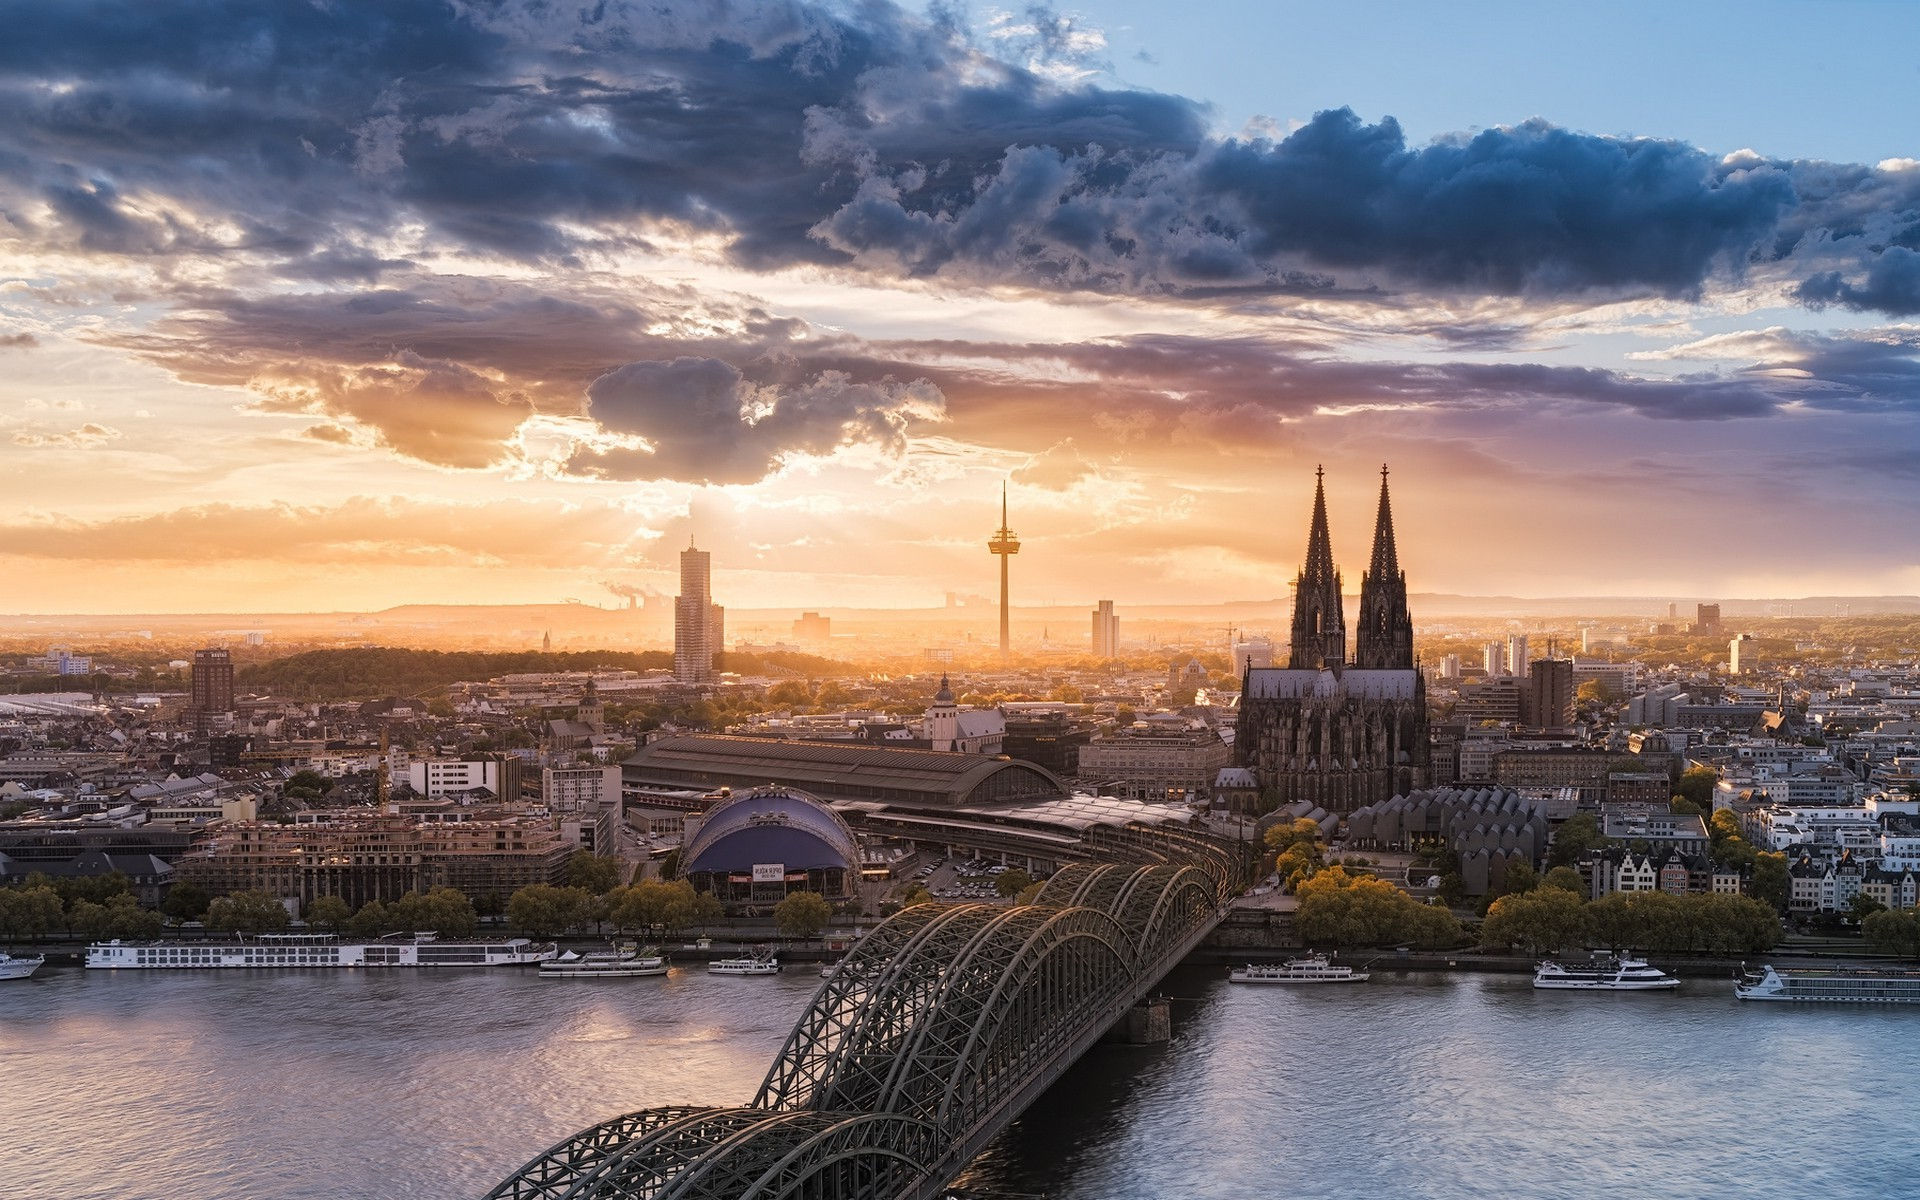 Cologne Cathedral and Hohenzollern Bridge Germany wallpapers (52 Wallpapers)